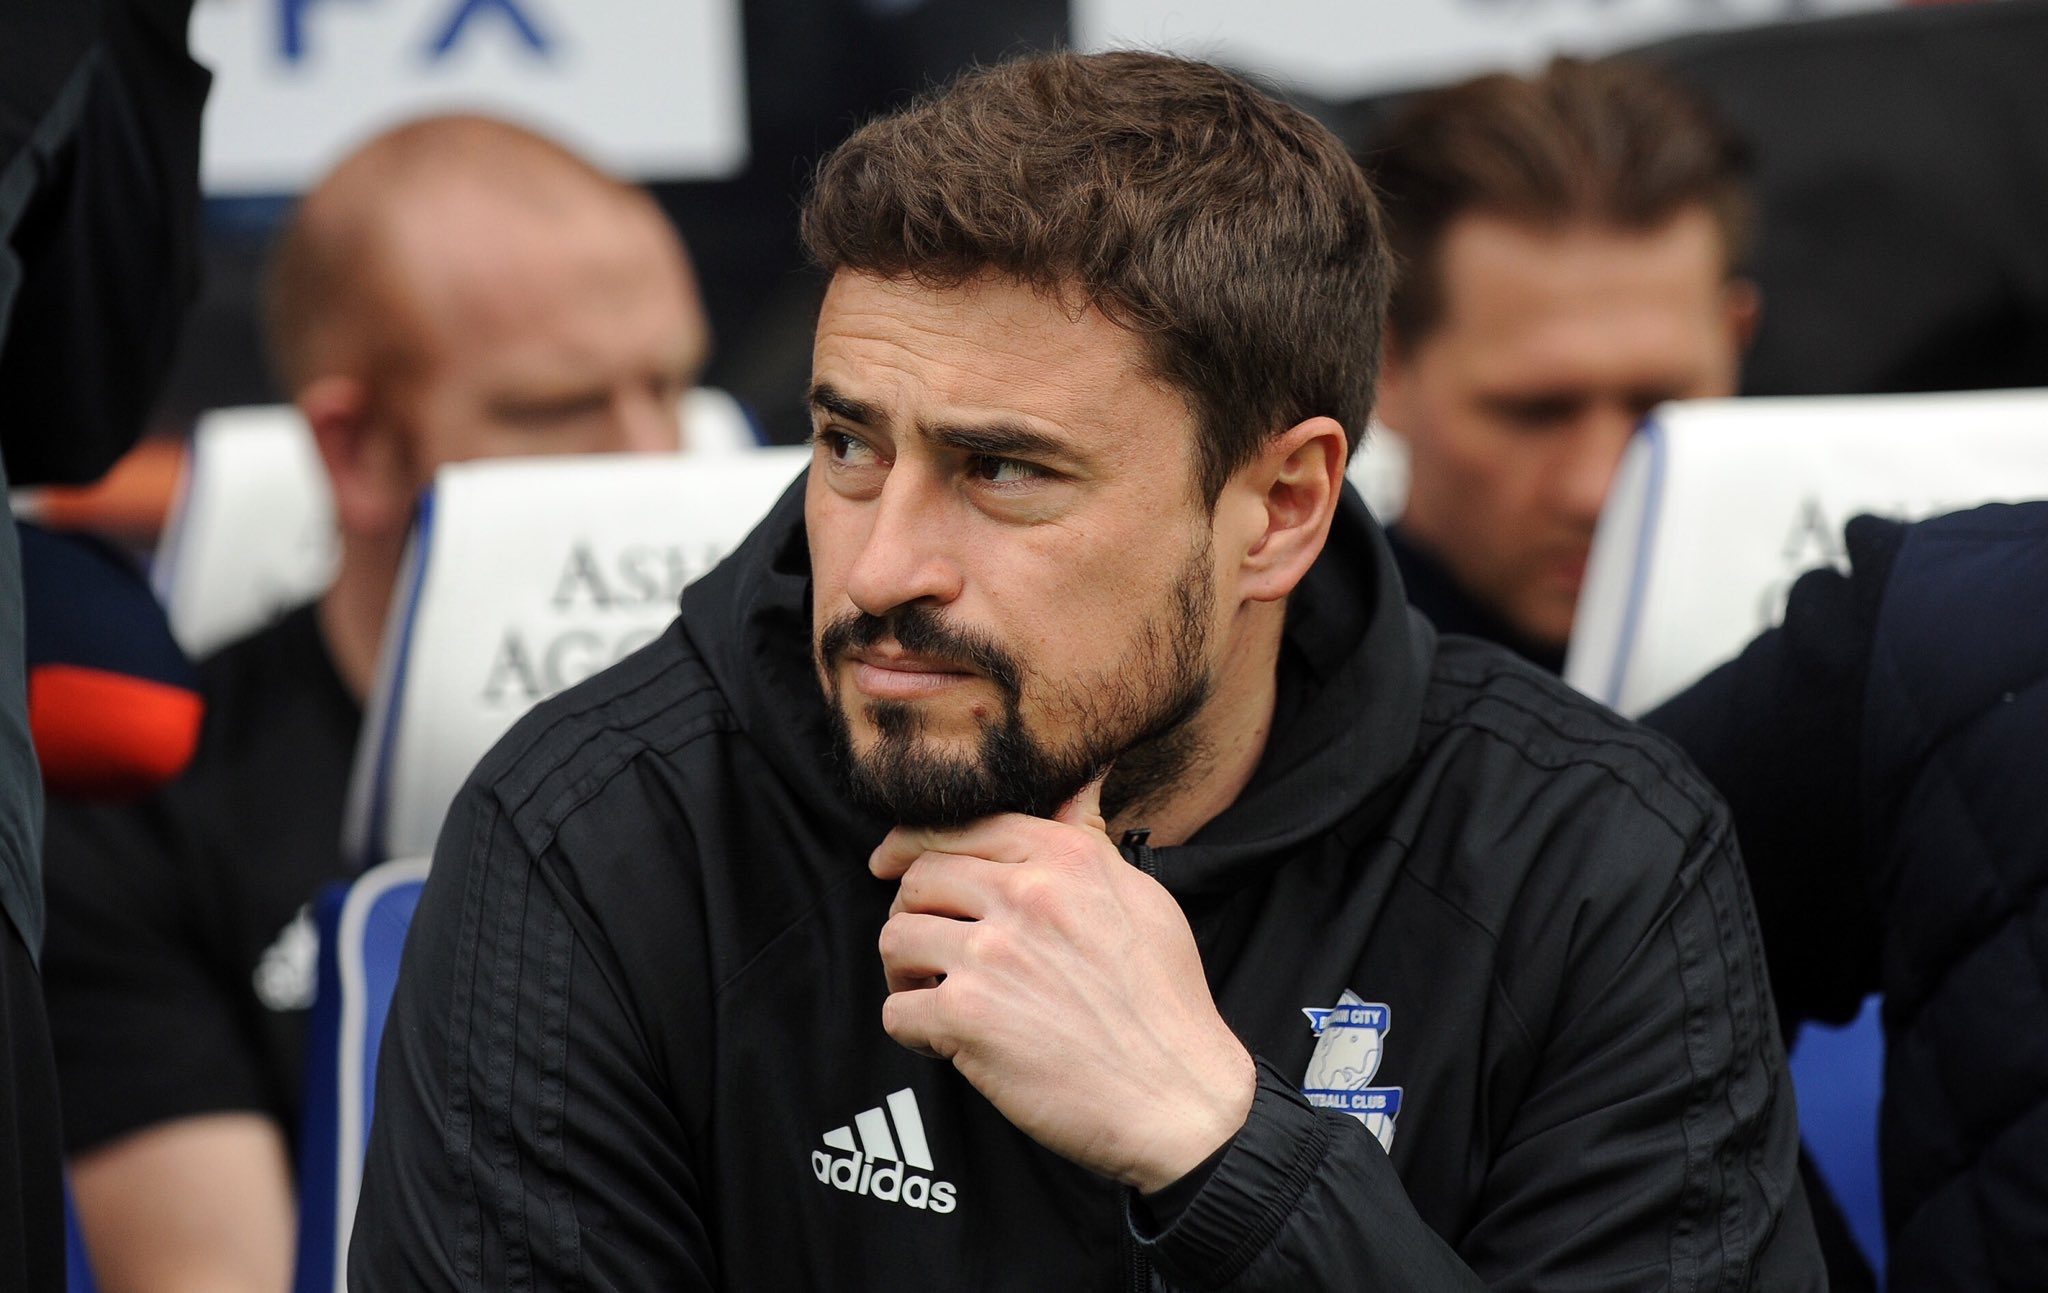 Mundo Deportivo chats to Pep Clotet ahead of his 5th season in English football with the challenge of cementing Birmingham's Championship status